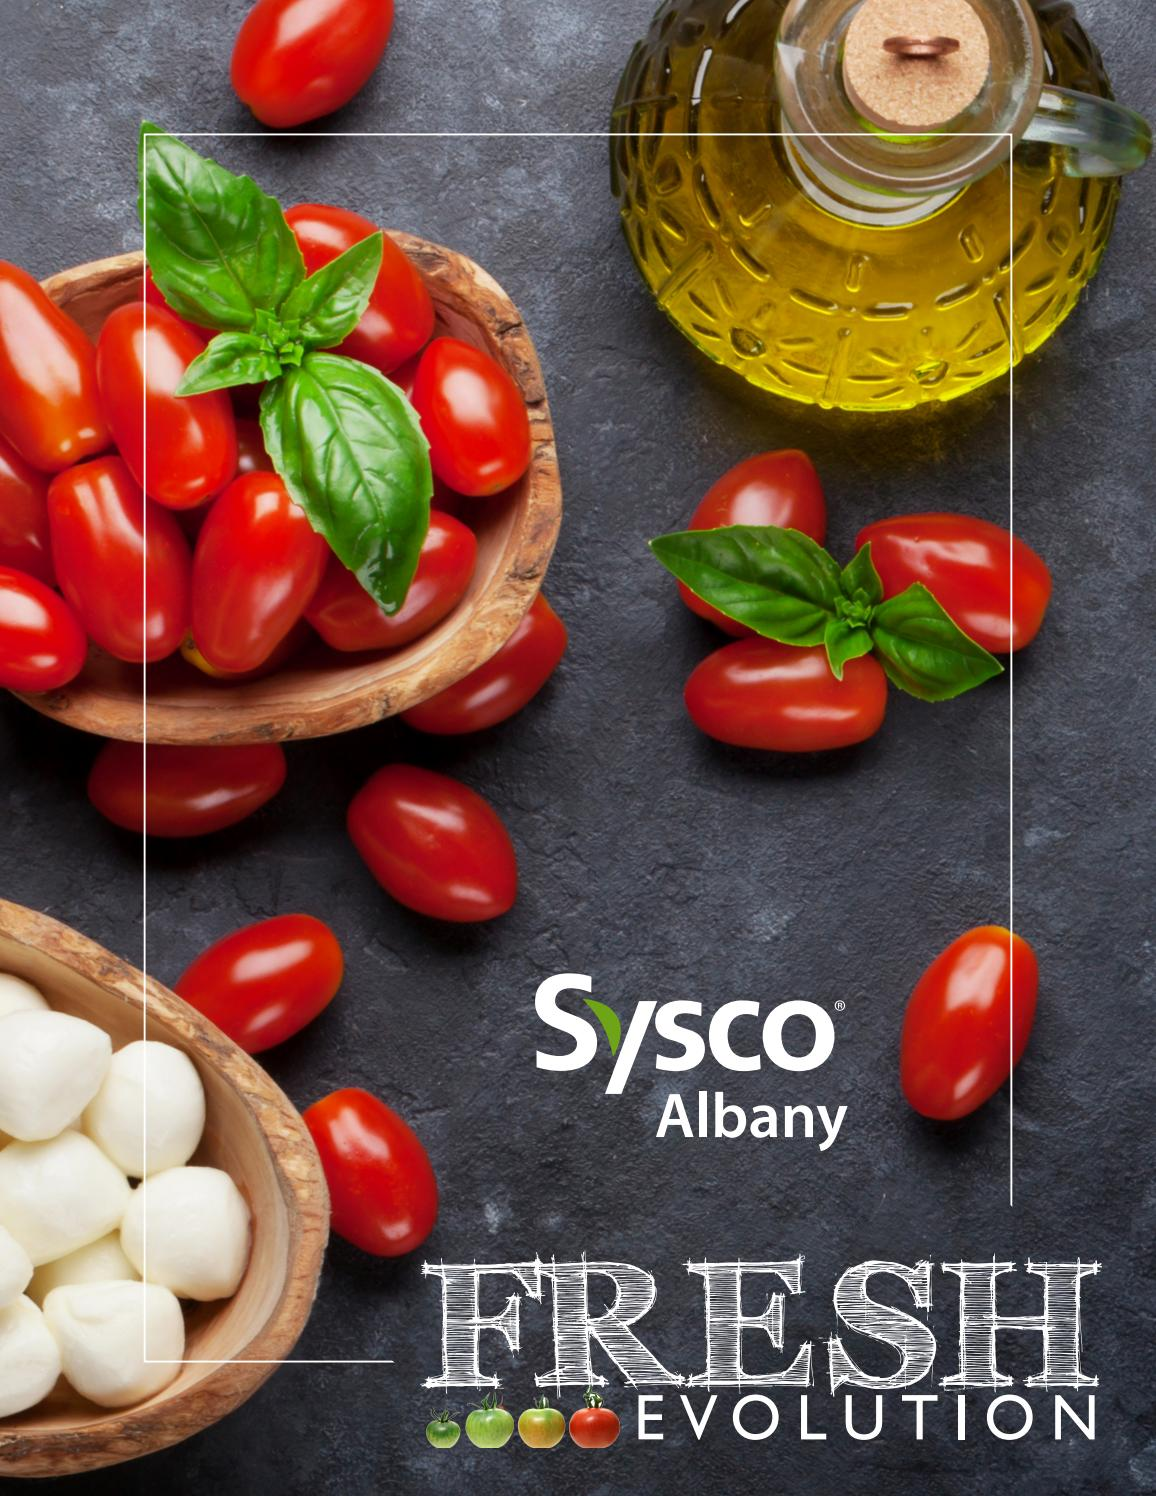 Cucina Viva Castelvetrano Olives Fresh Evolution Show Book 2018 By Sysco Albany Issuu